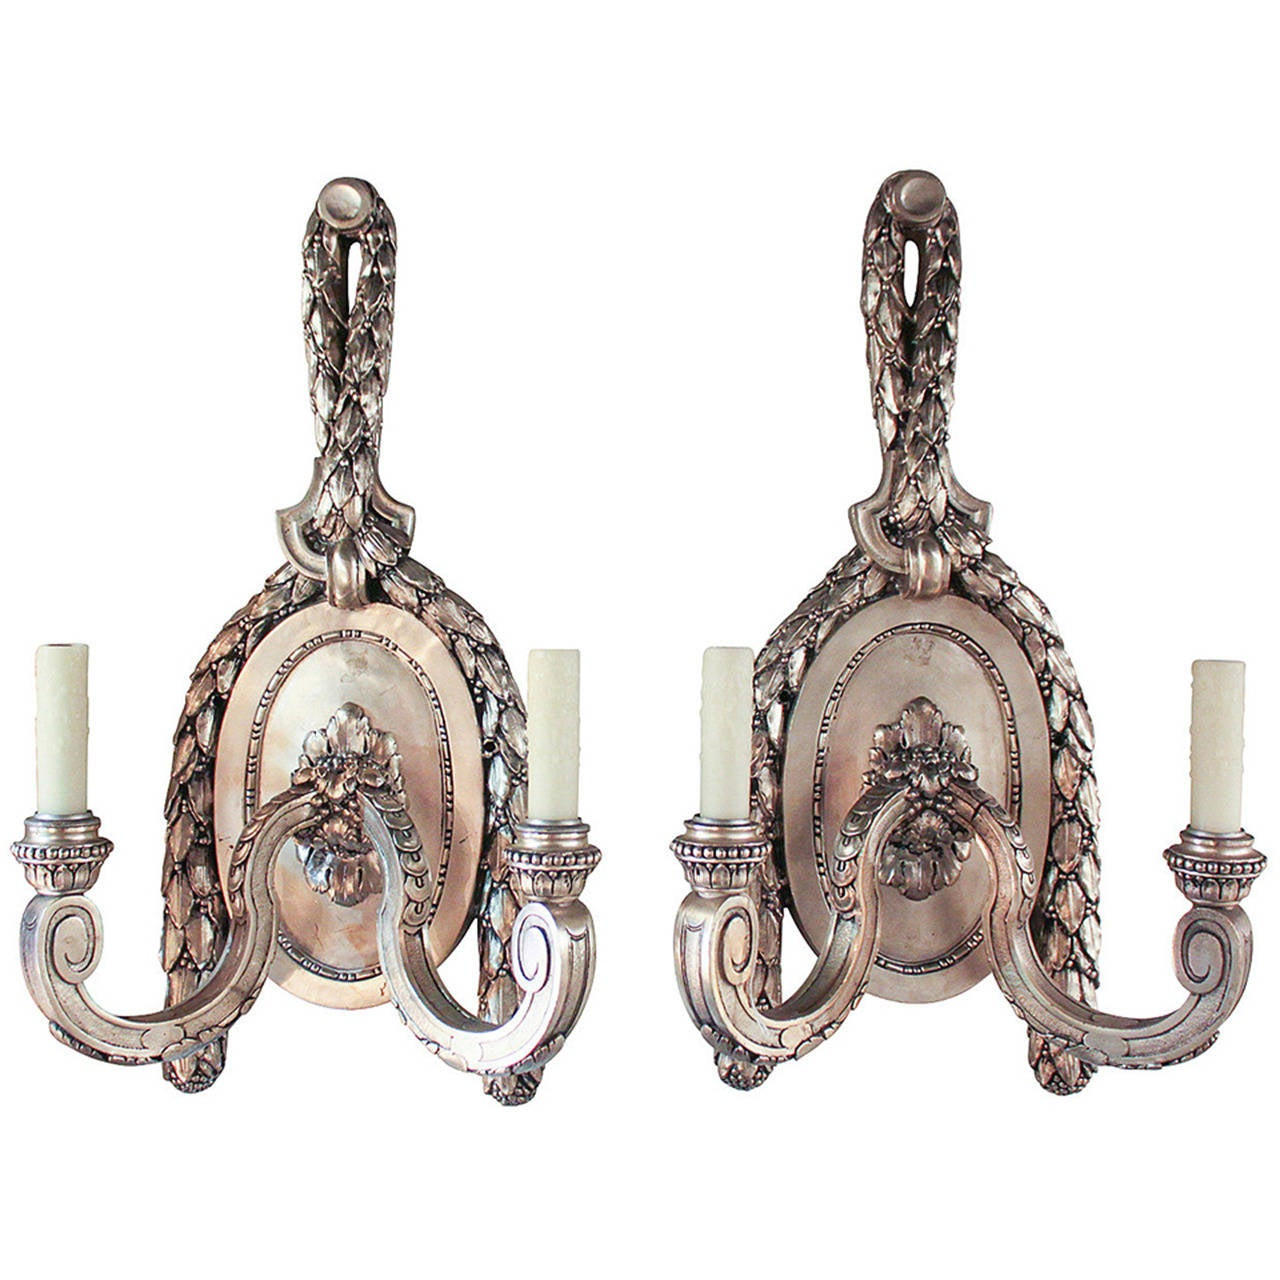 Pair of French Silvered Wall Sconce